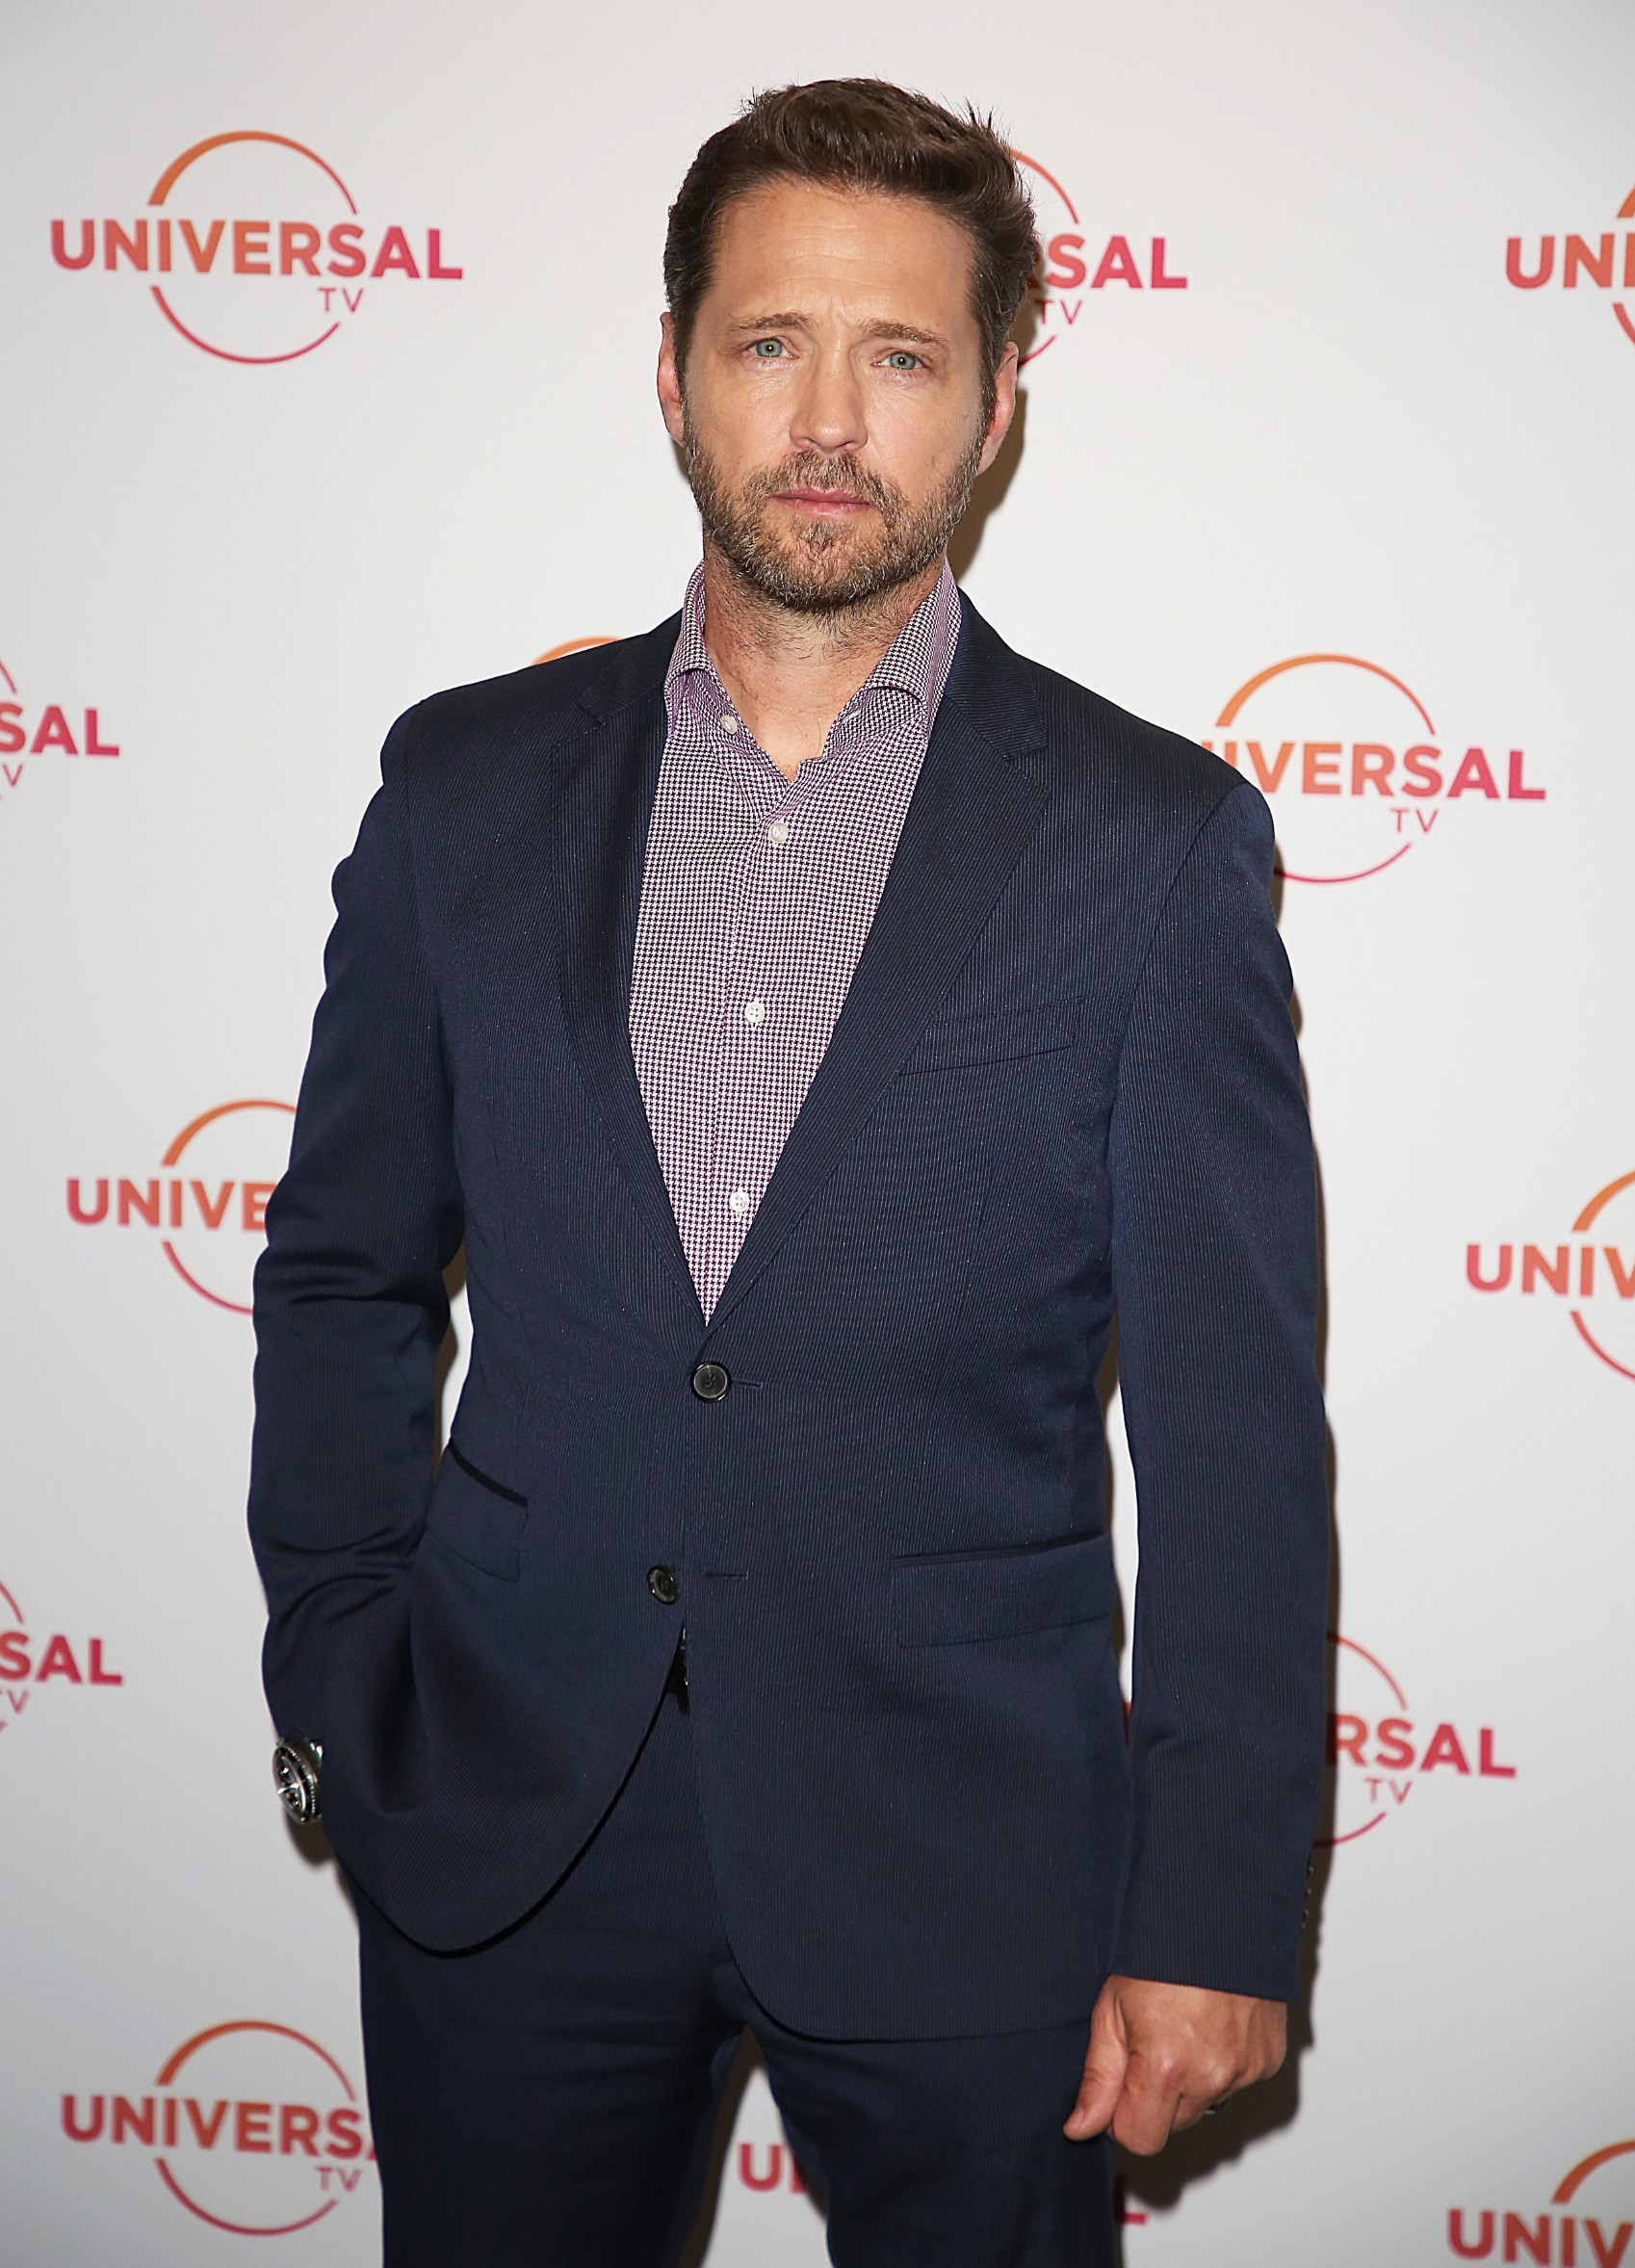 Jason Priestley 'Private Eyes' TV Series photocall, London, UK - 31 May 2018,Image: 373484879, License: Rights-managed, Restrictions: , Model Release: no, Credit line: Brett Cove/Silverhub / Shutterstock Editorial / Profimedia